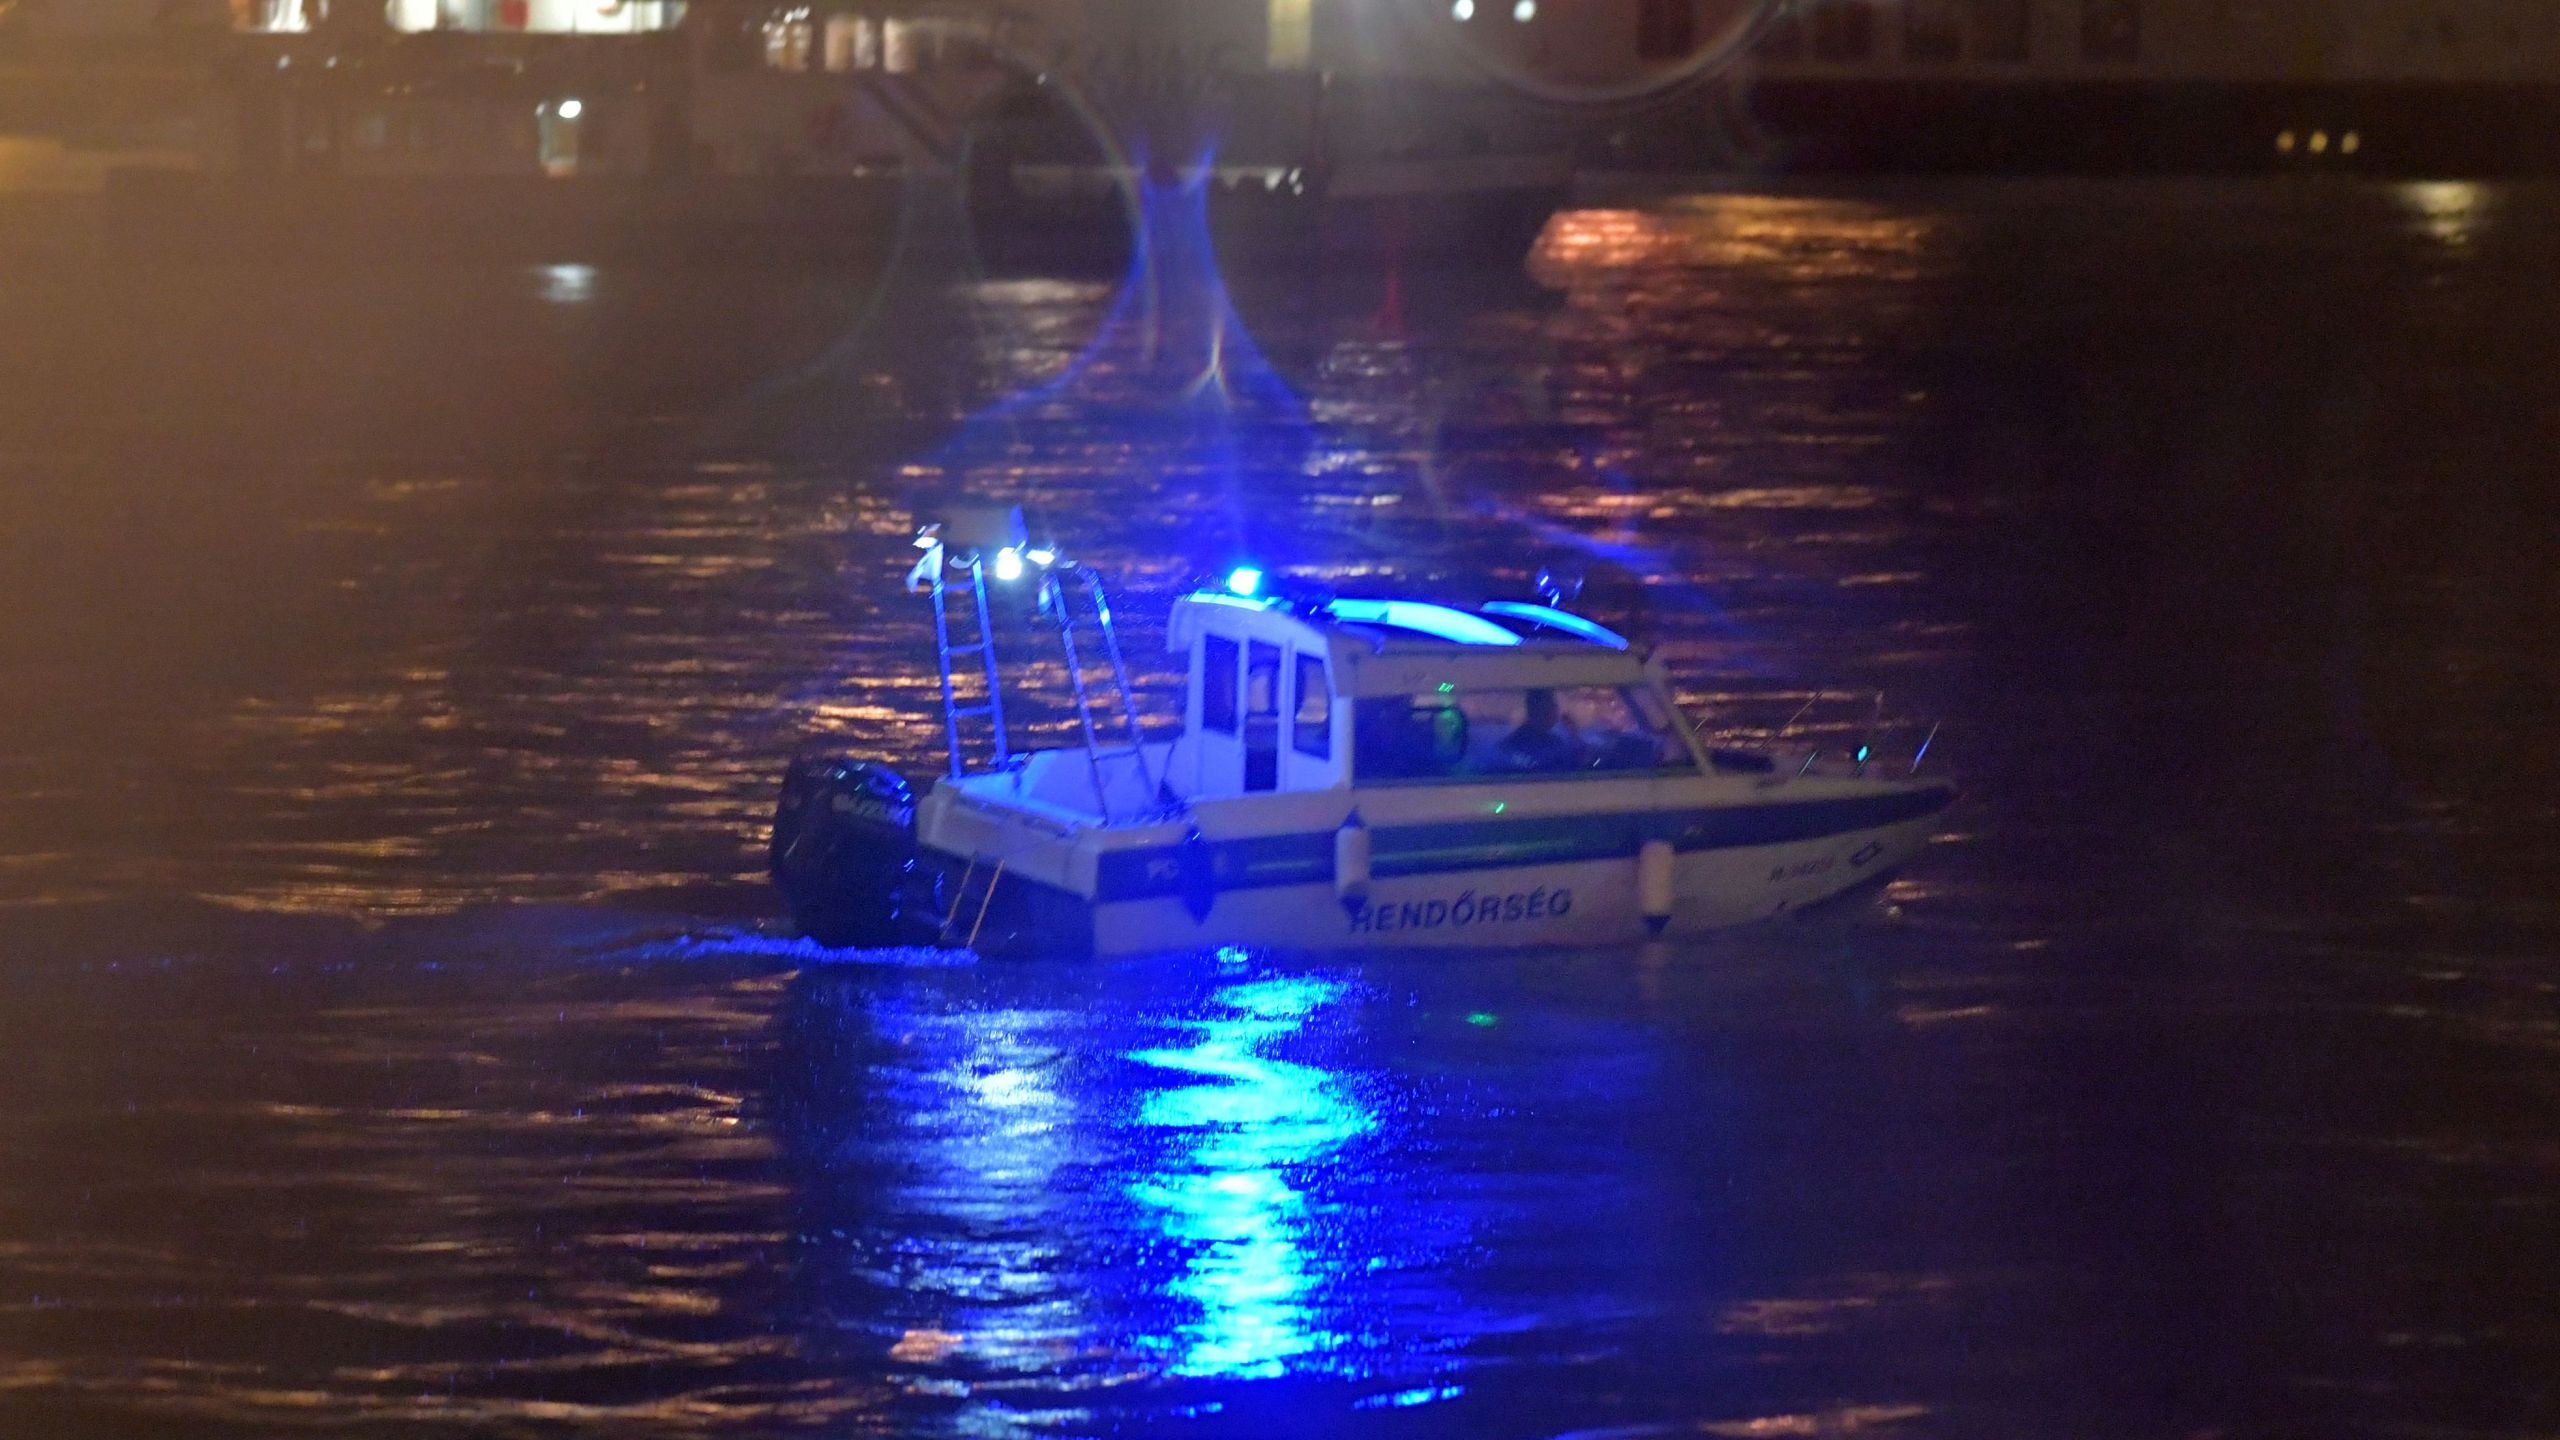 Crew members of a police boat search for survivors after the Hungarian 'Hableany' (Mermaid) riverboat capsized after a collision on the Danube River in Budapest on May 30, 2019. - Seven South Korean tourists were killed and 19 missing after a pleasure boat capsized on the Danube in the Hungarian capital, the foreign ministry said on May 30, 2019. (Credit: GERGELY BESENYEI/AFP/Getty Images)